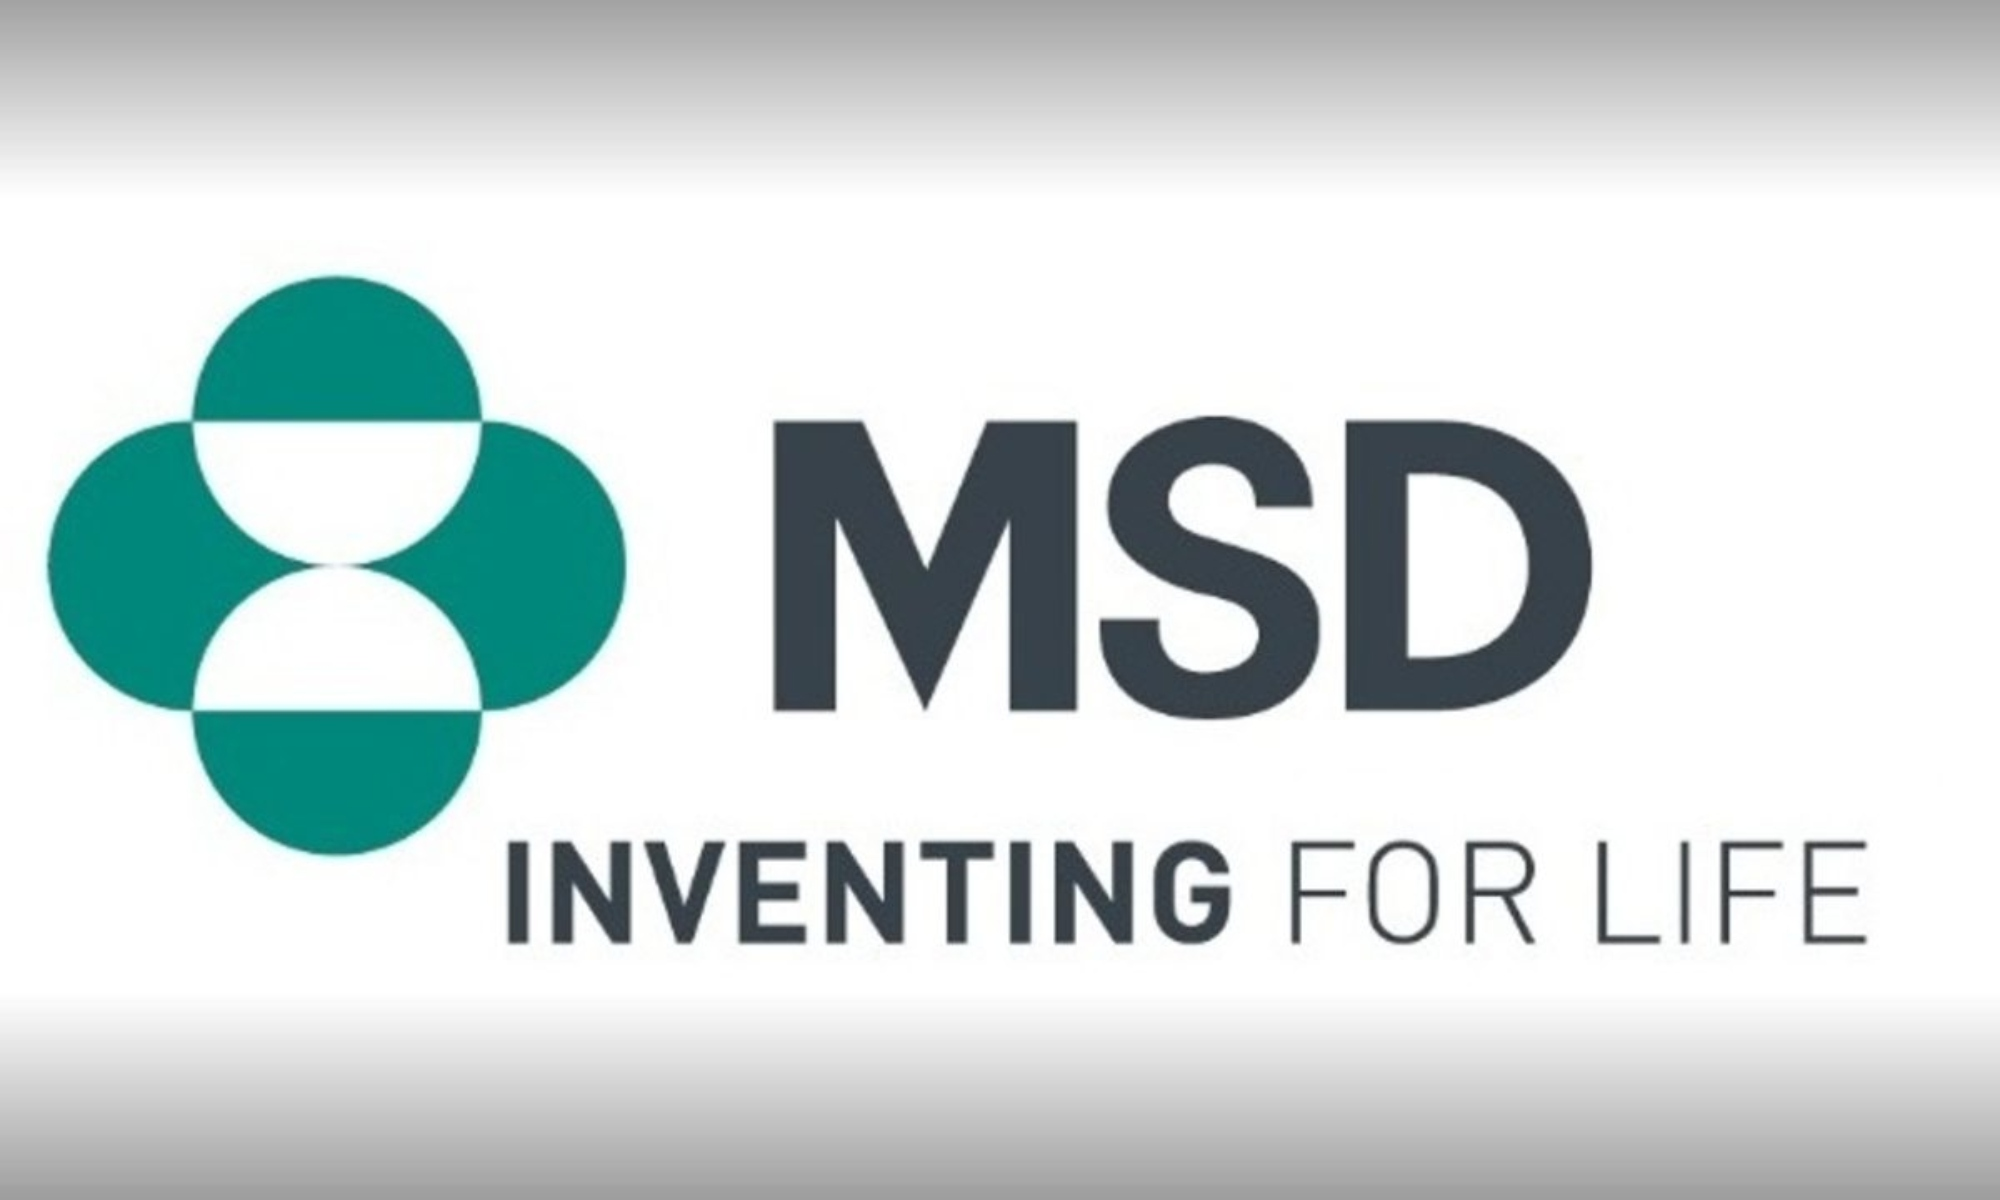 MSD: Απέκτησε την πιστοποίηση του Great Place to Work